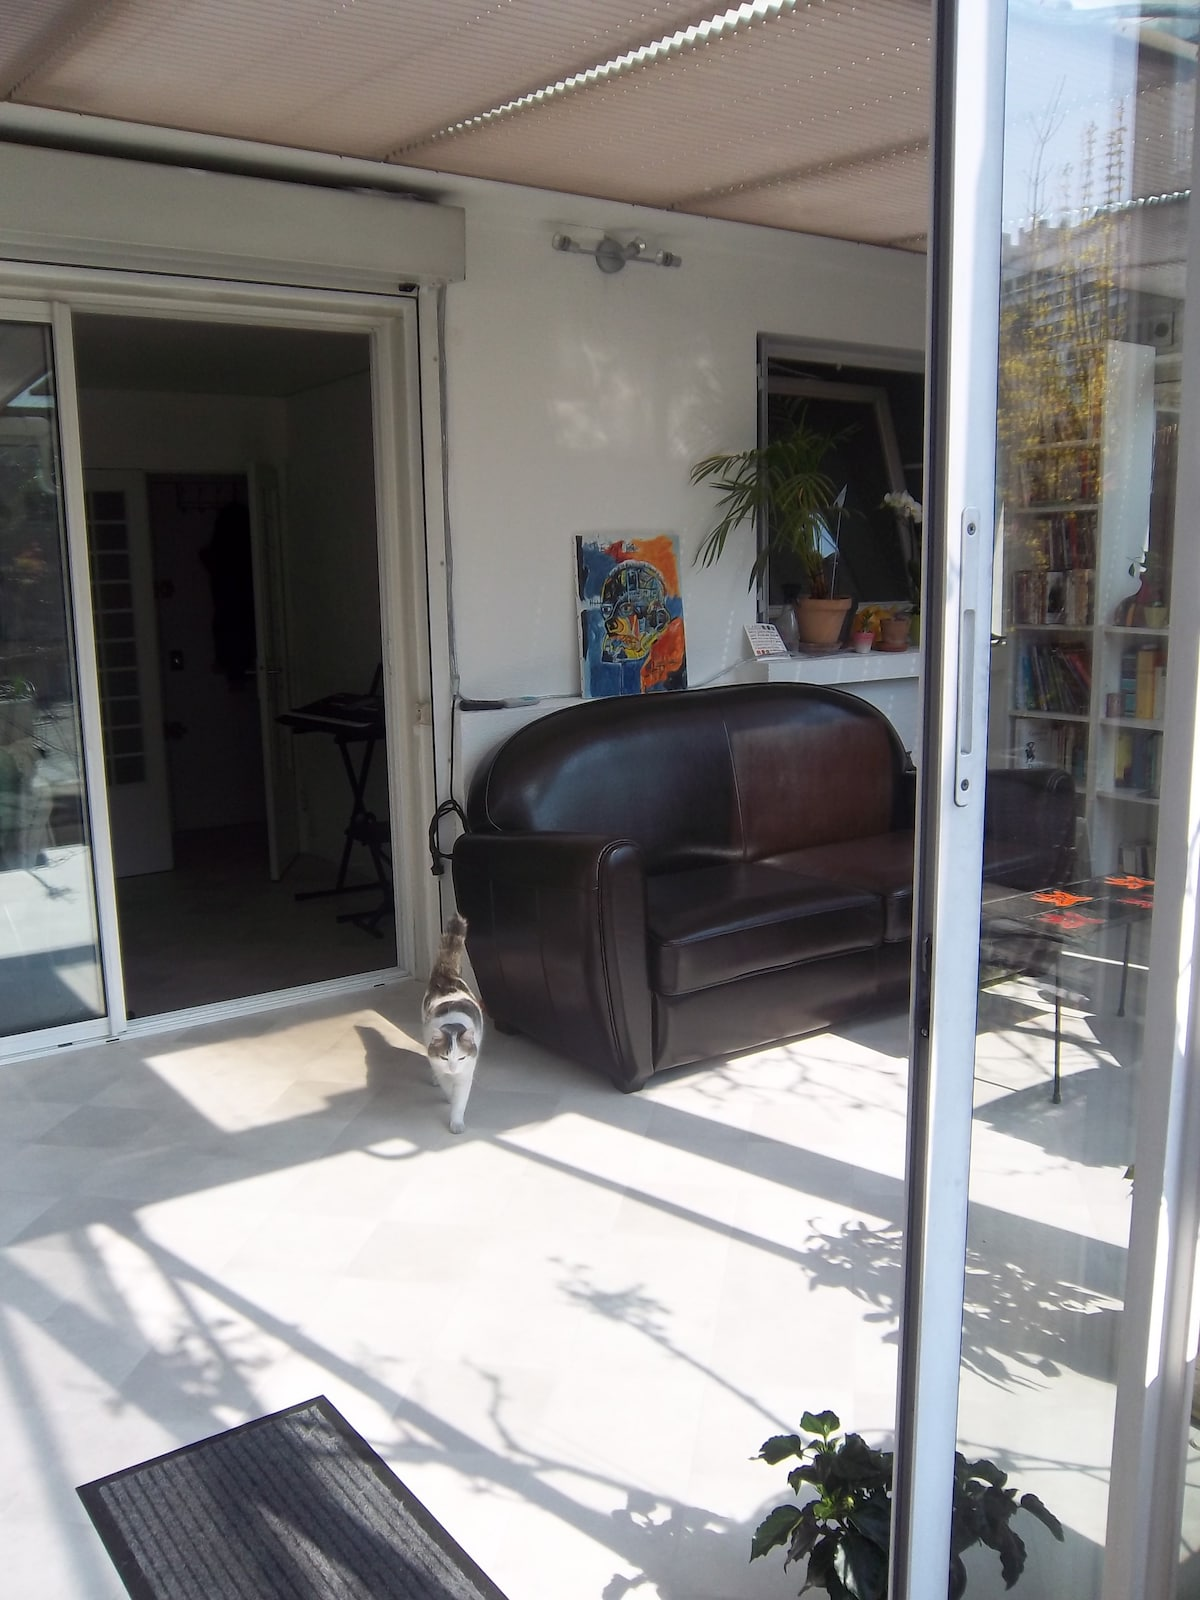 the veranda, and the convertible couch, with chatouille, the cat :-)